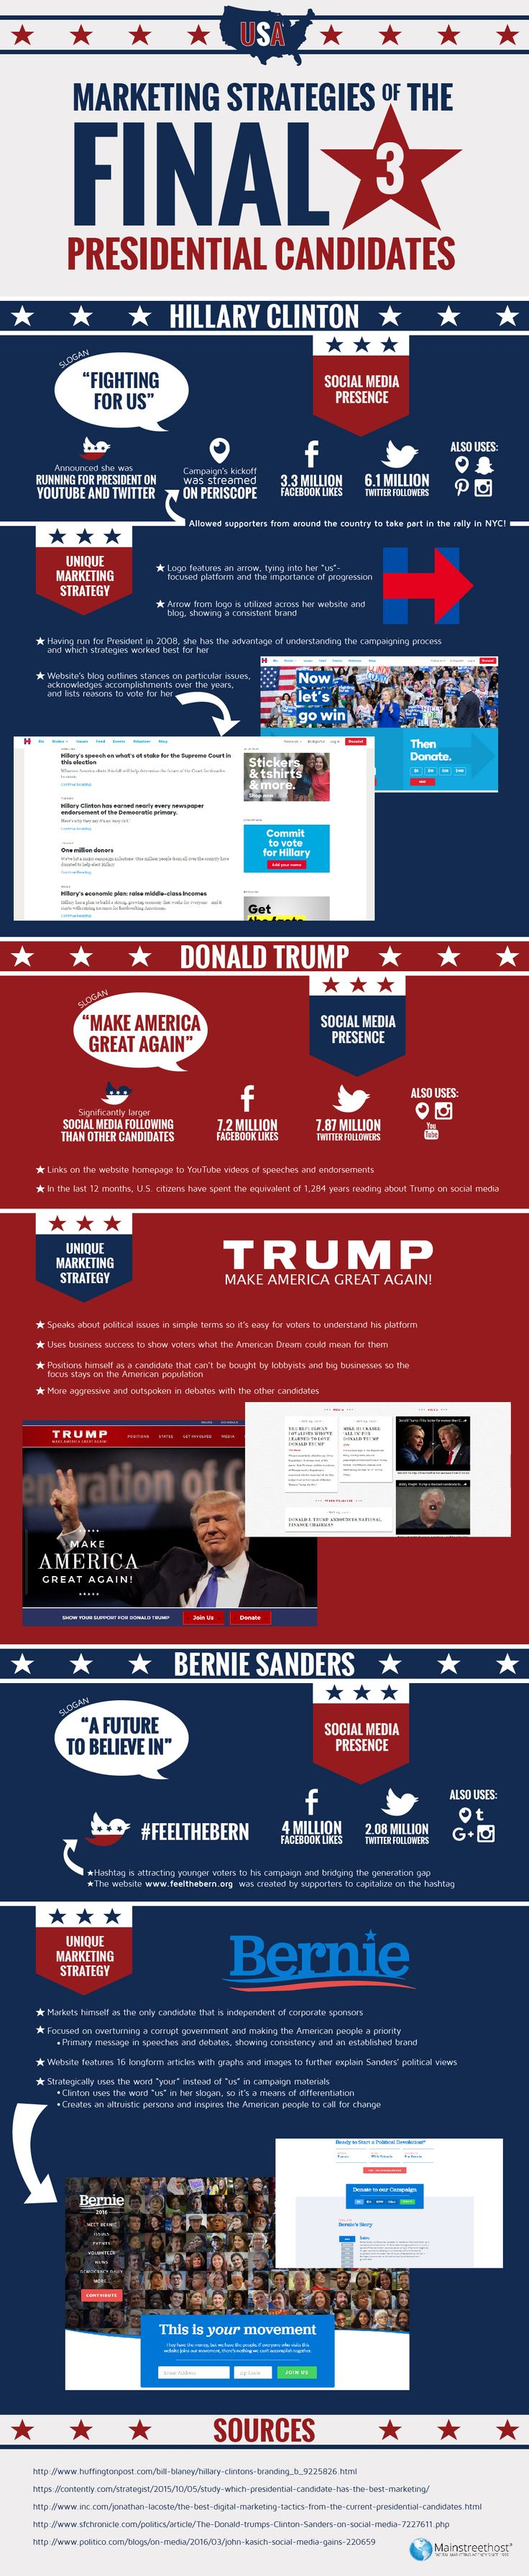 Marketing Strategies Of The Final 3 Presidential Candidates #Infographic #Politics